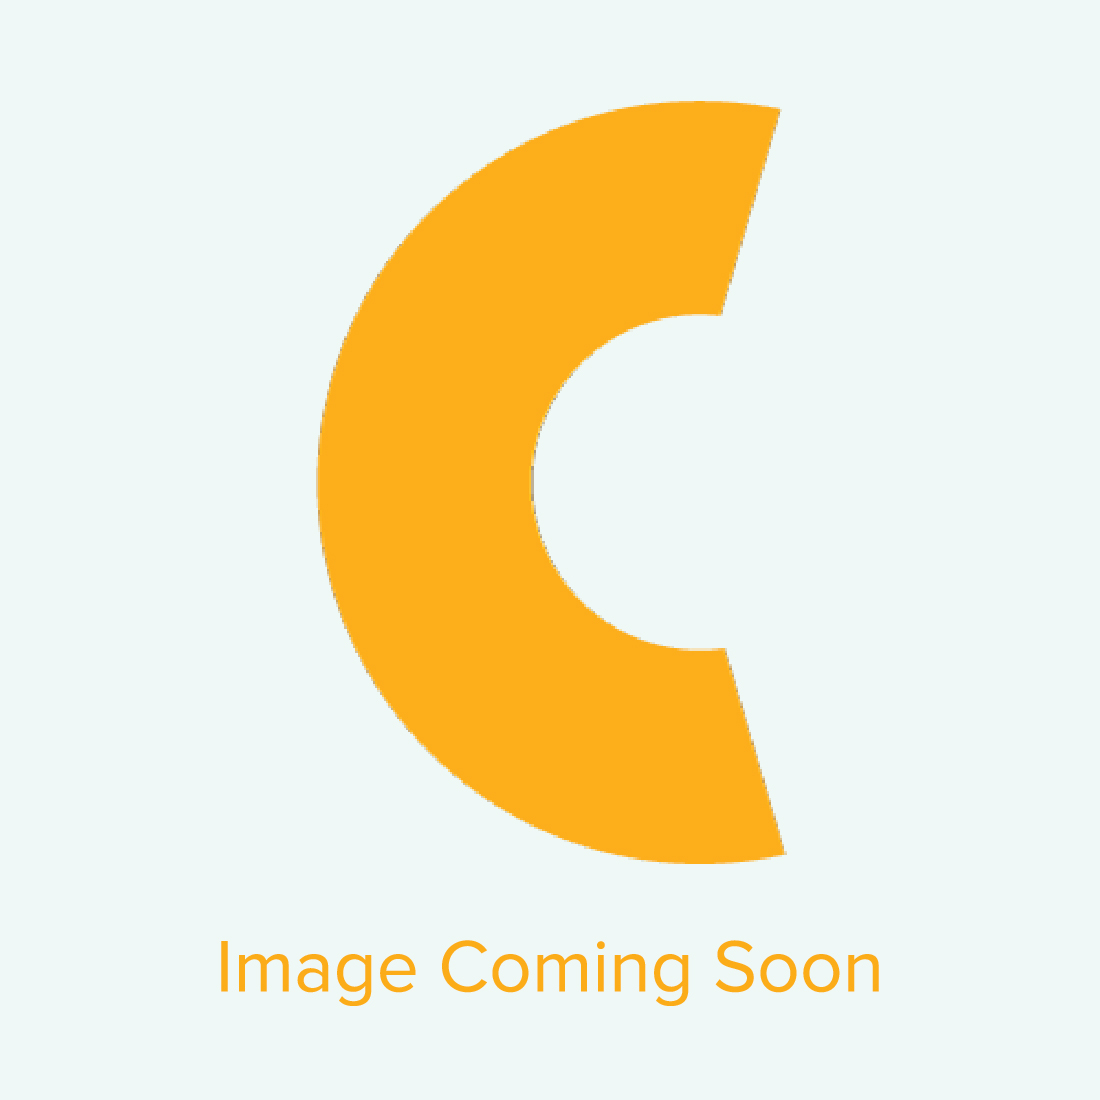 "FOREVER Flex Soft Sample Pack – 21 Sheets of 8.5"" x 11"""